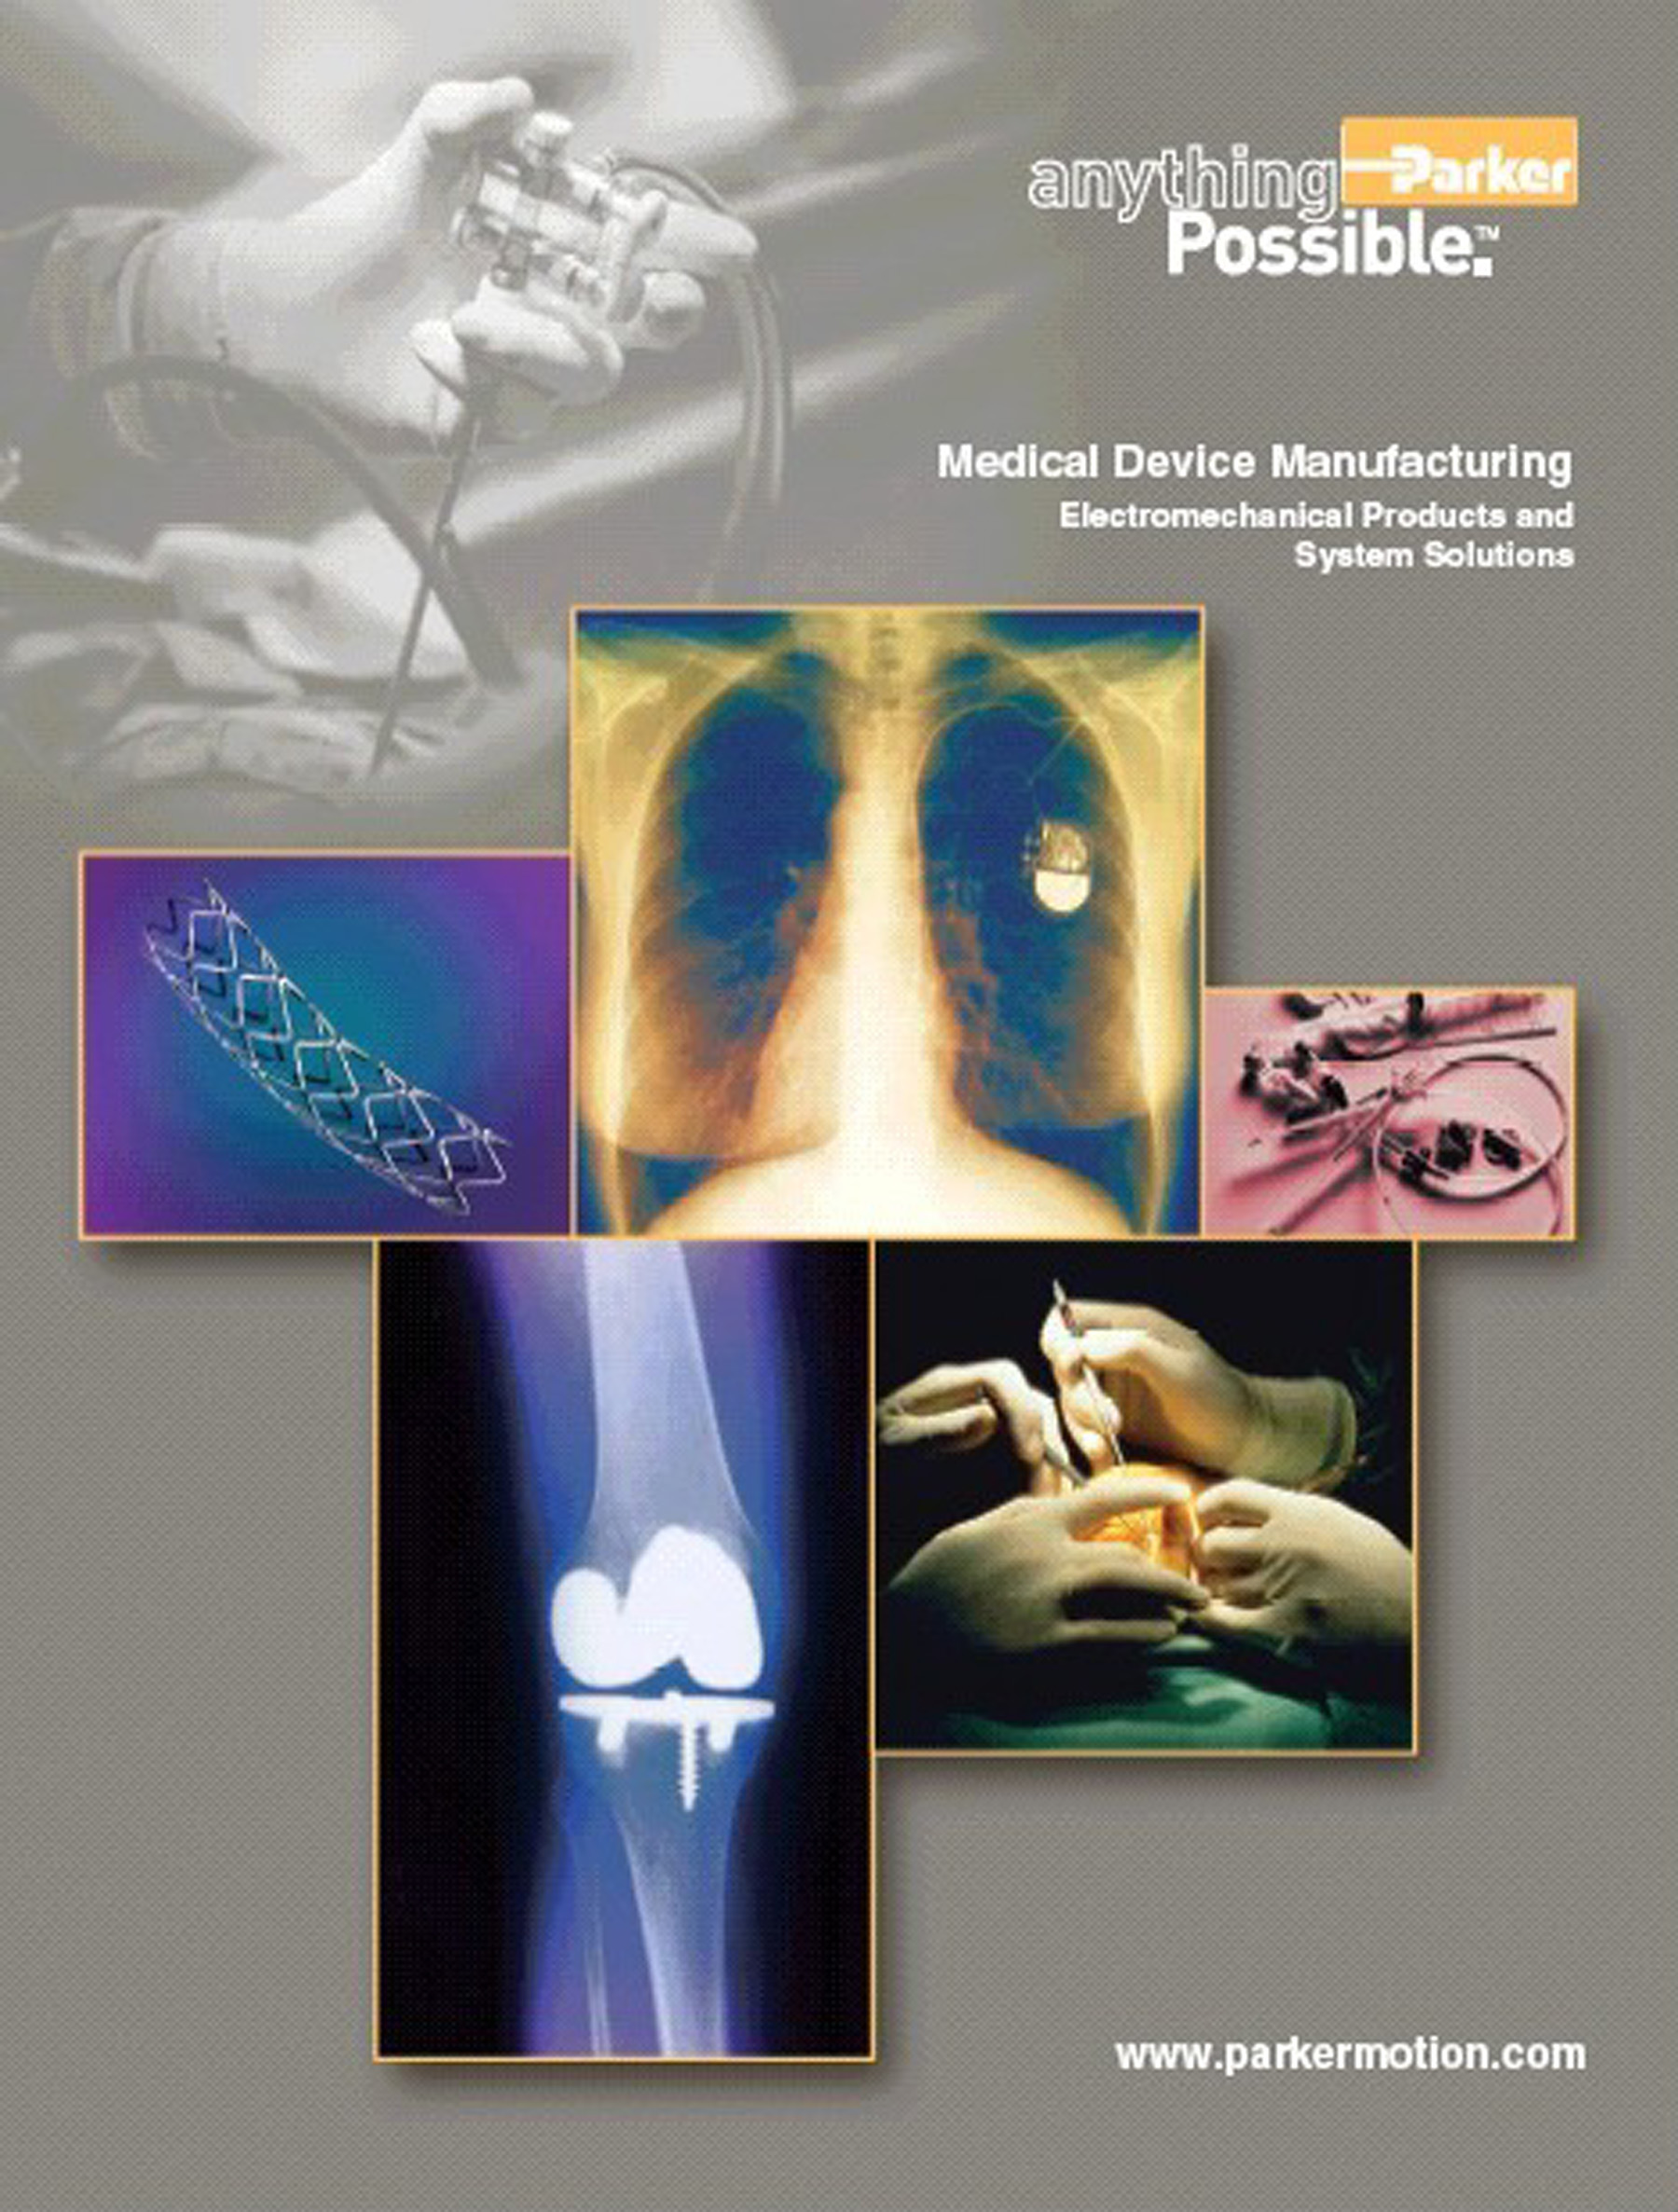 Medical Device Manufacturing Brochure